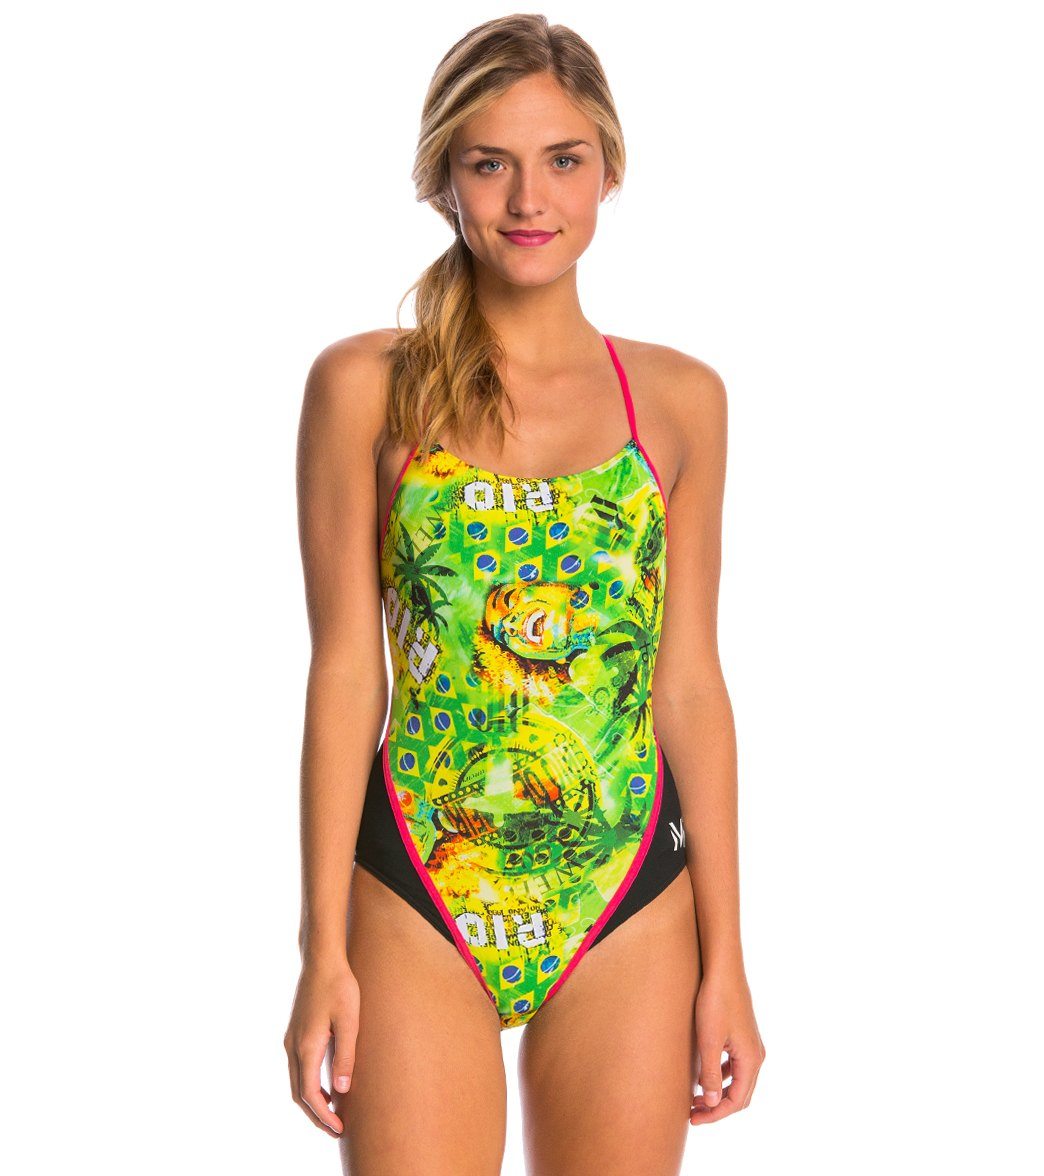 efb0f767f5 MP Michael Phelps Corco Racerback One Piece Swimsuit at SwimOutlet.com -  Free Shipping